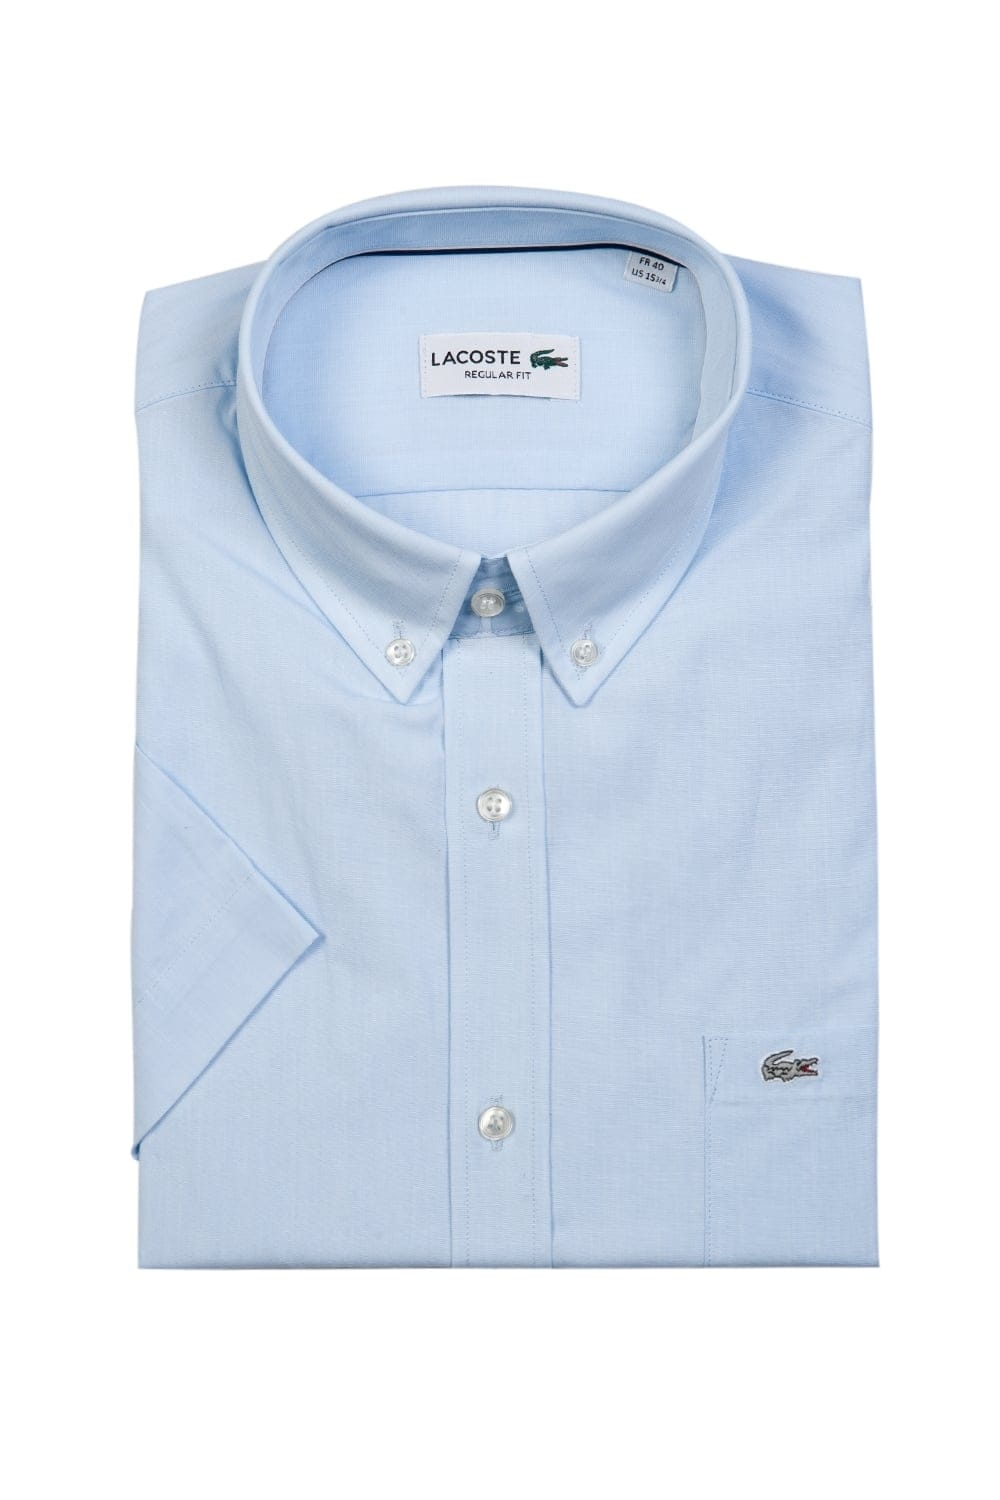 Lacoste short sleeve shirt ch6098 fsl lacoste from sage for Short sleeve lacoste shirt